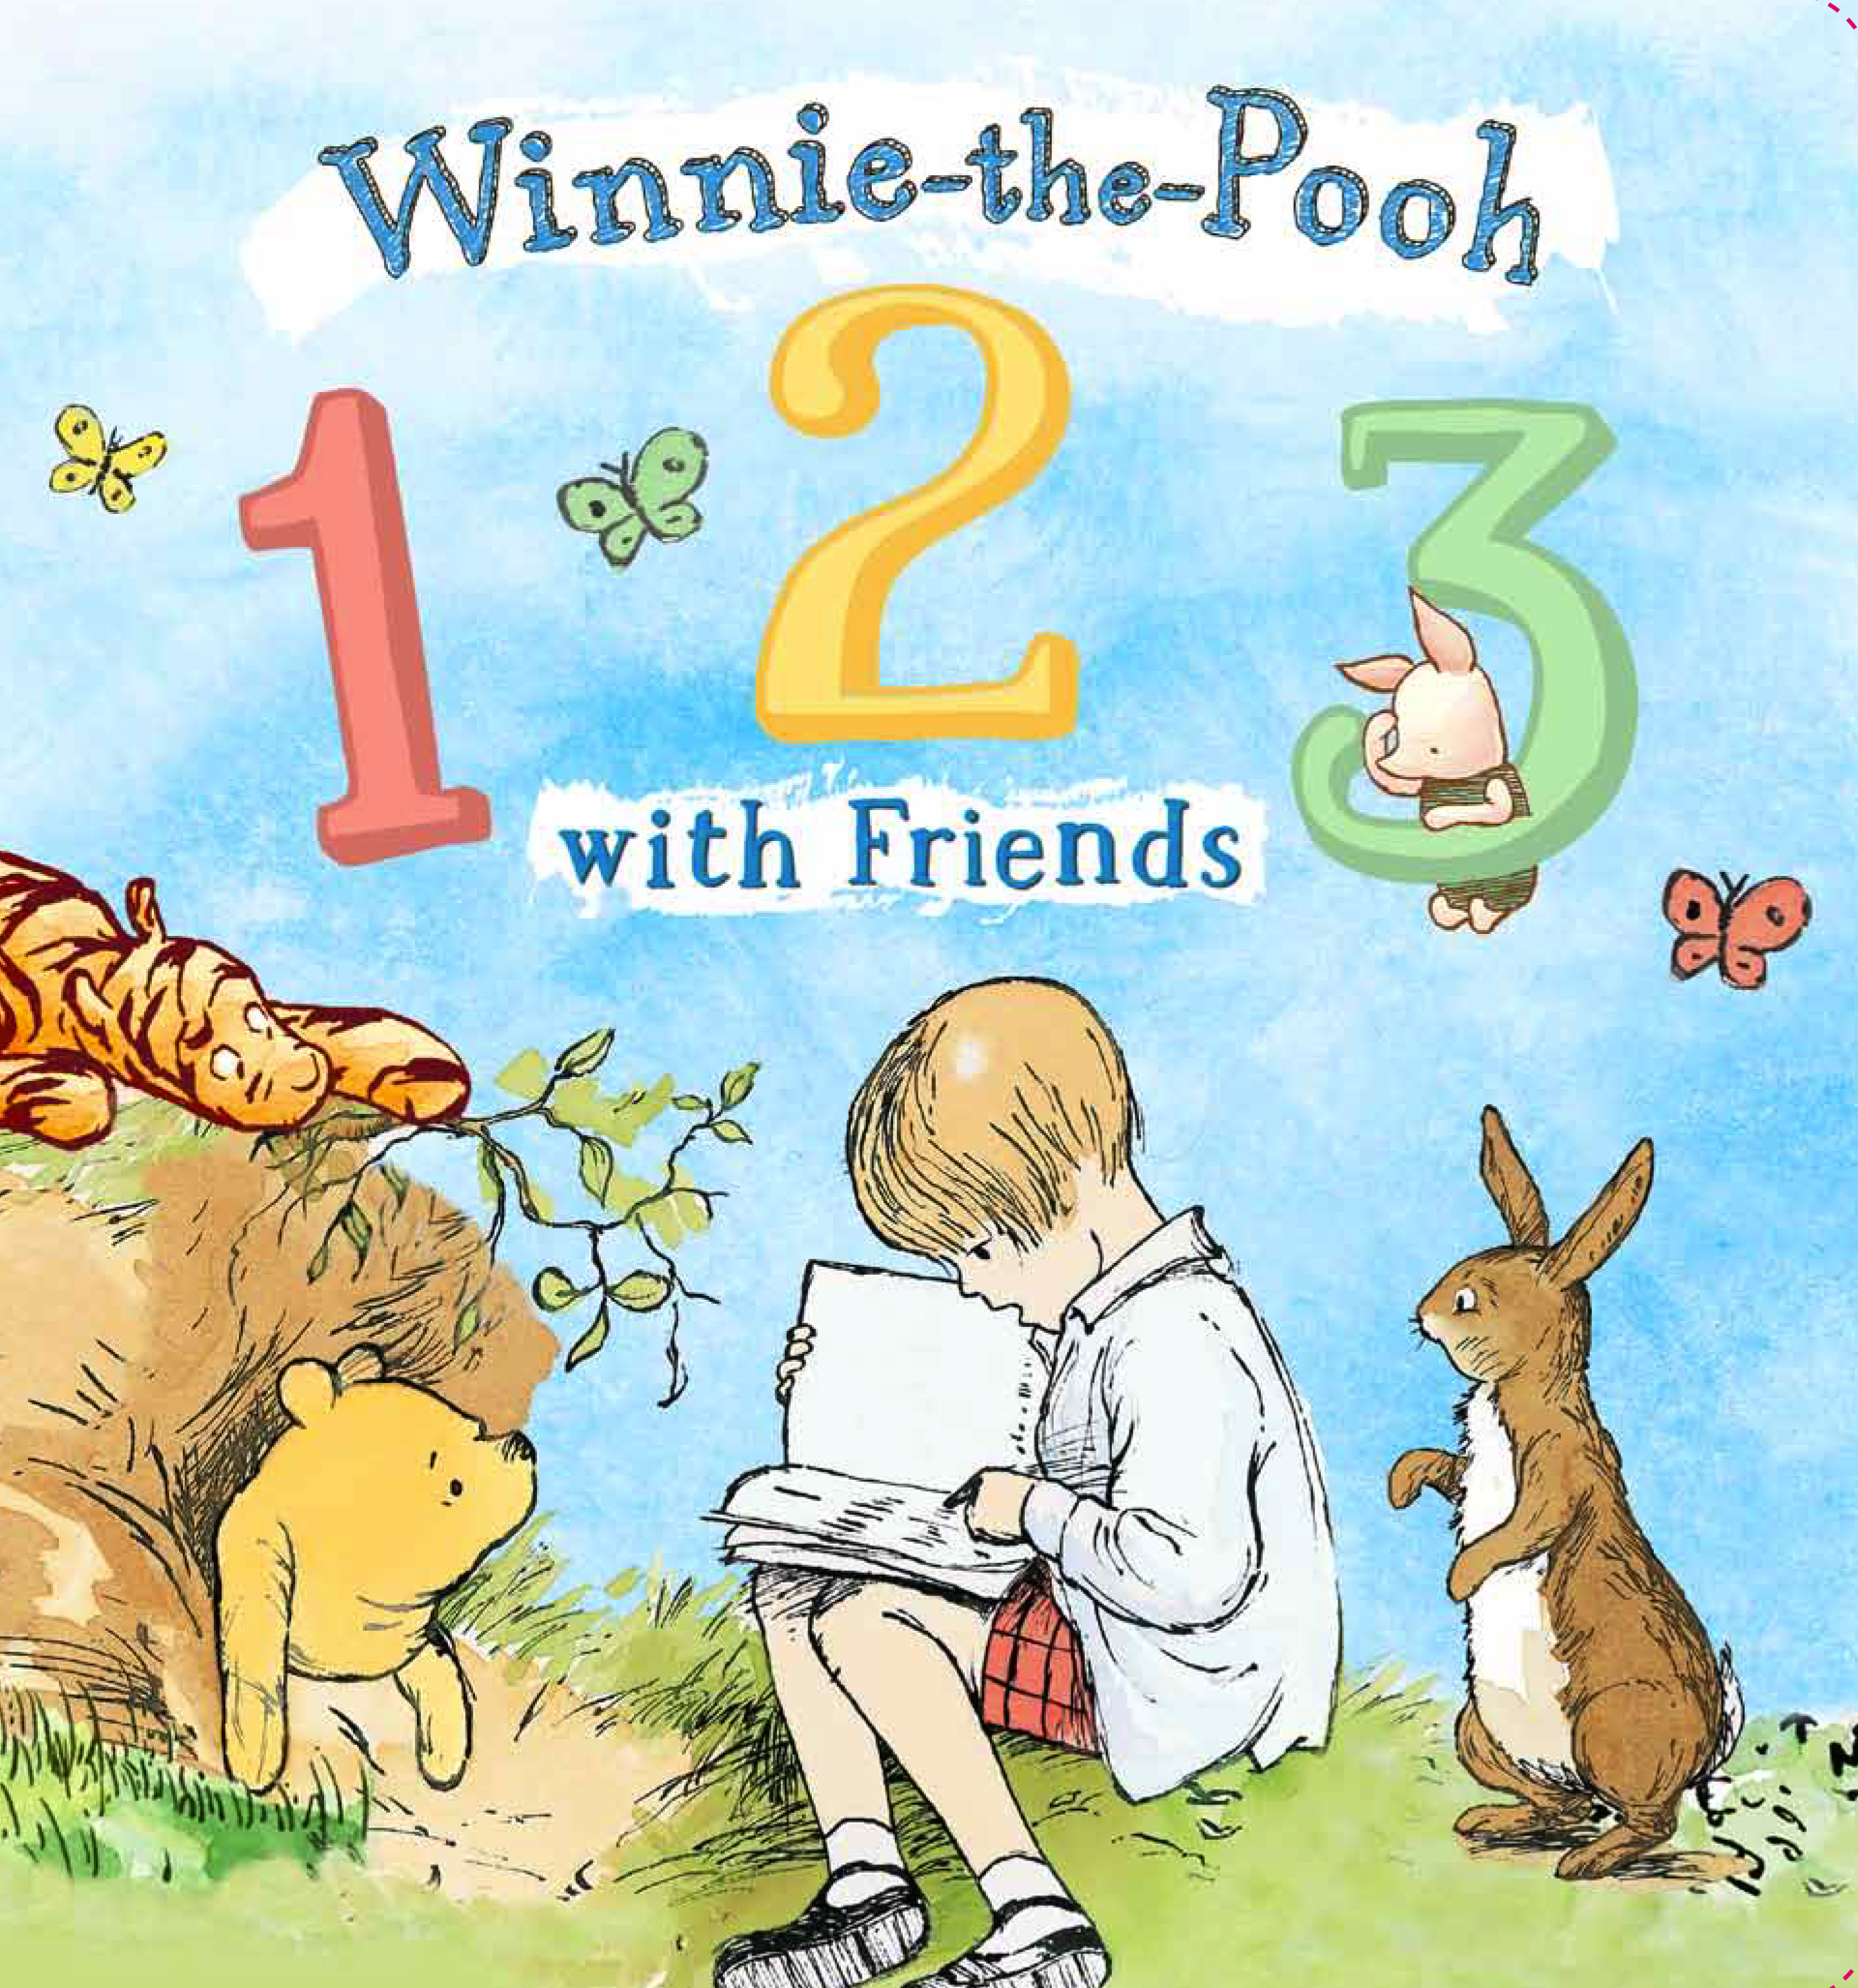 Winnie the Pooh: 123 with Friends